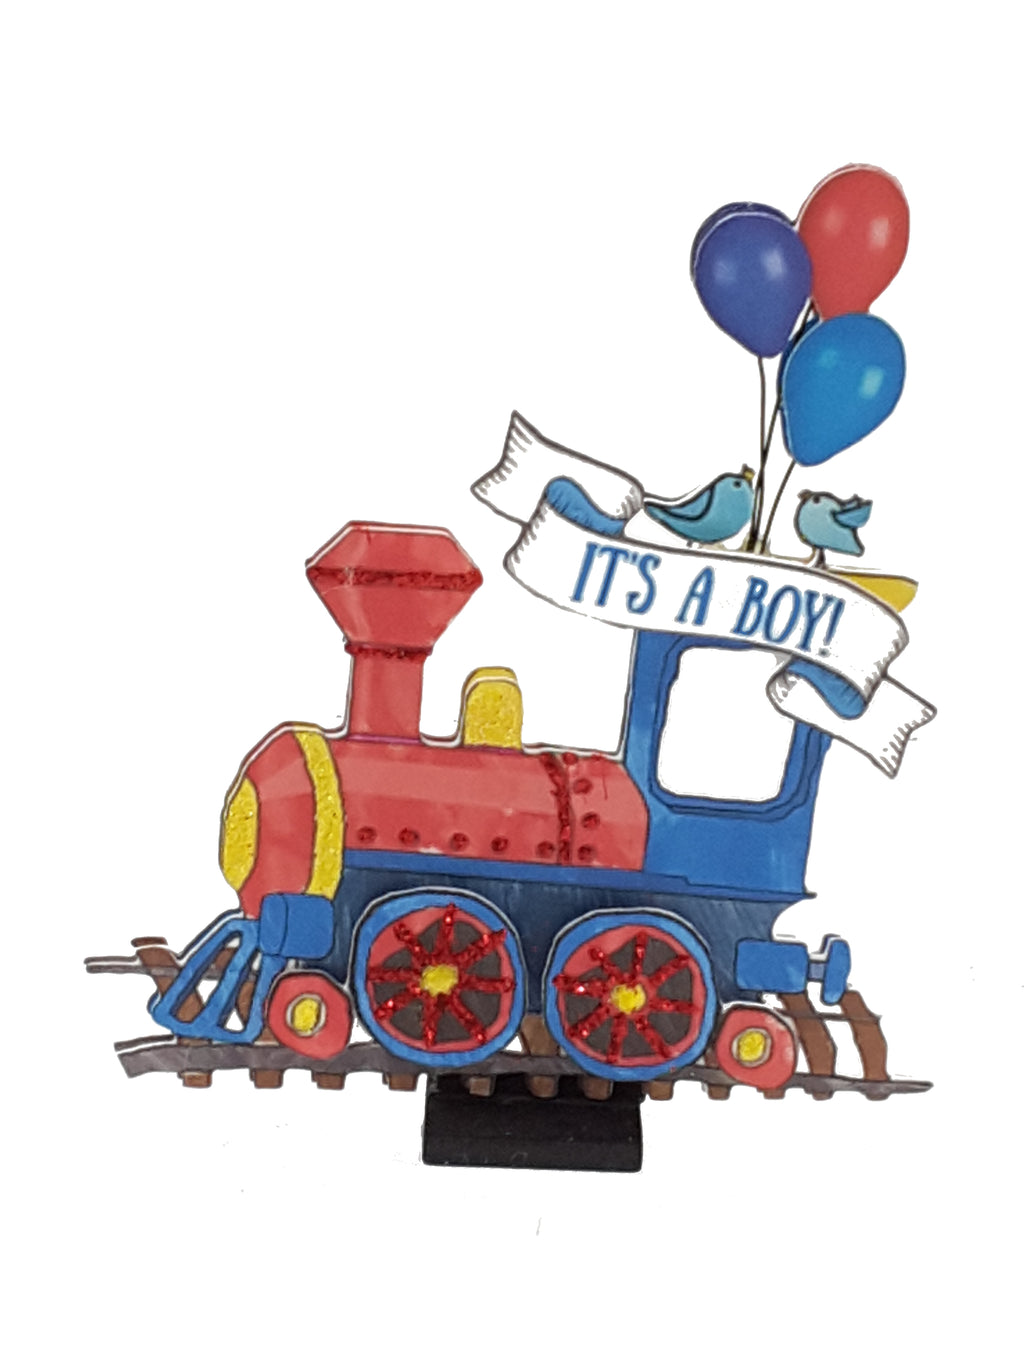 3D It's a Boy Card for newborn with Toy Train - The Last Word Bish